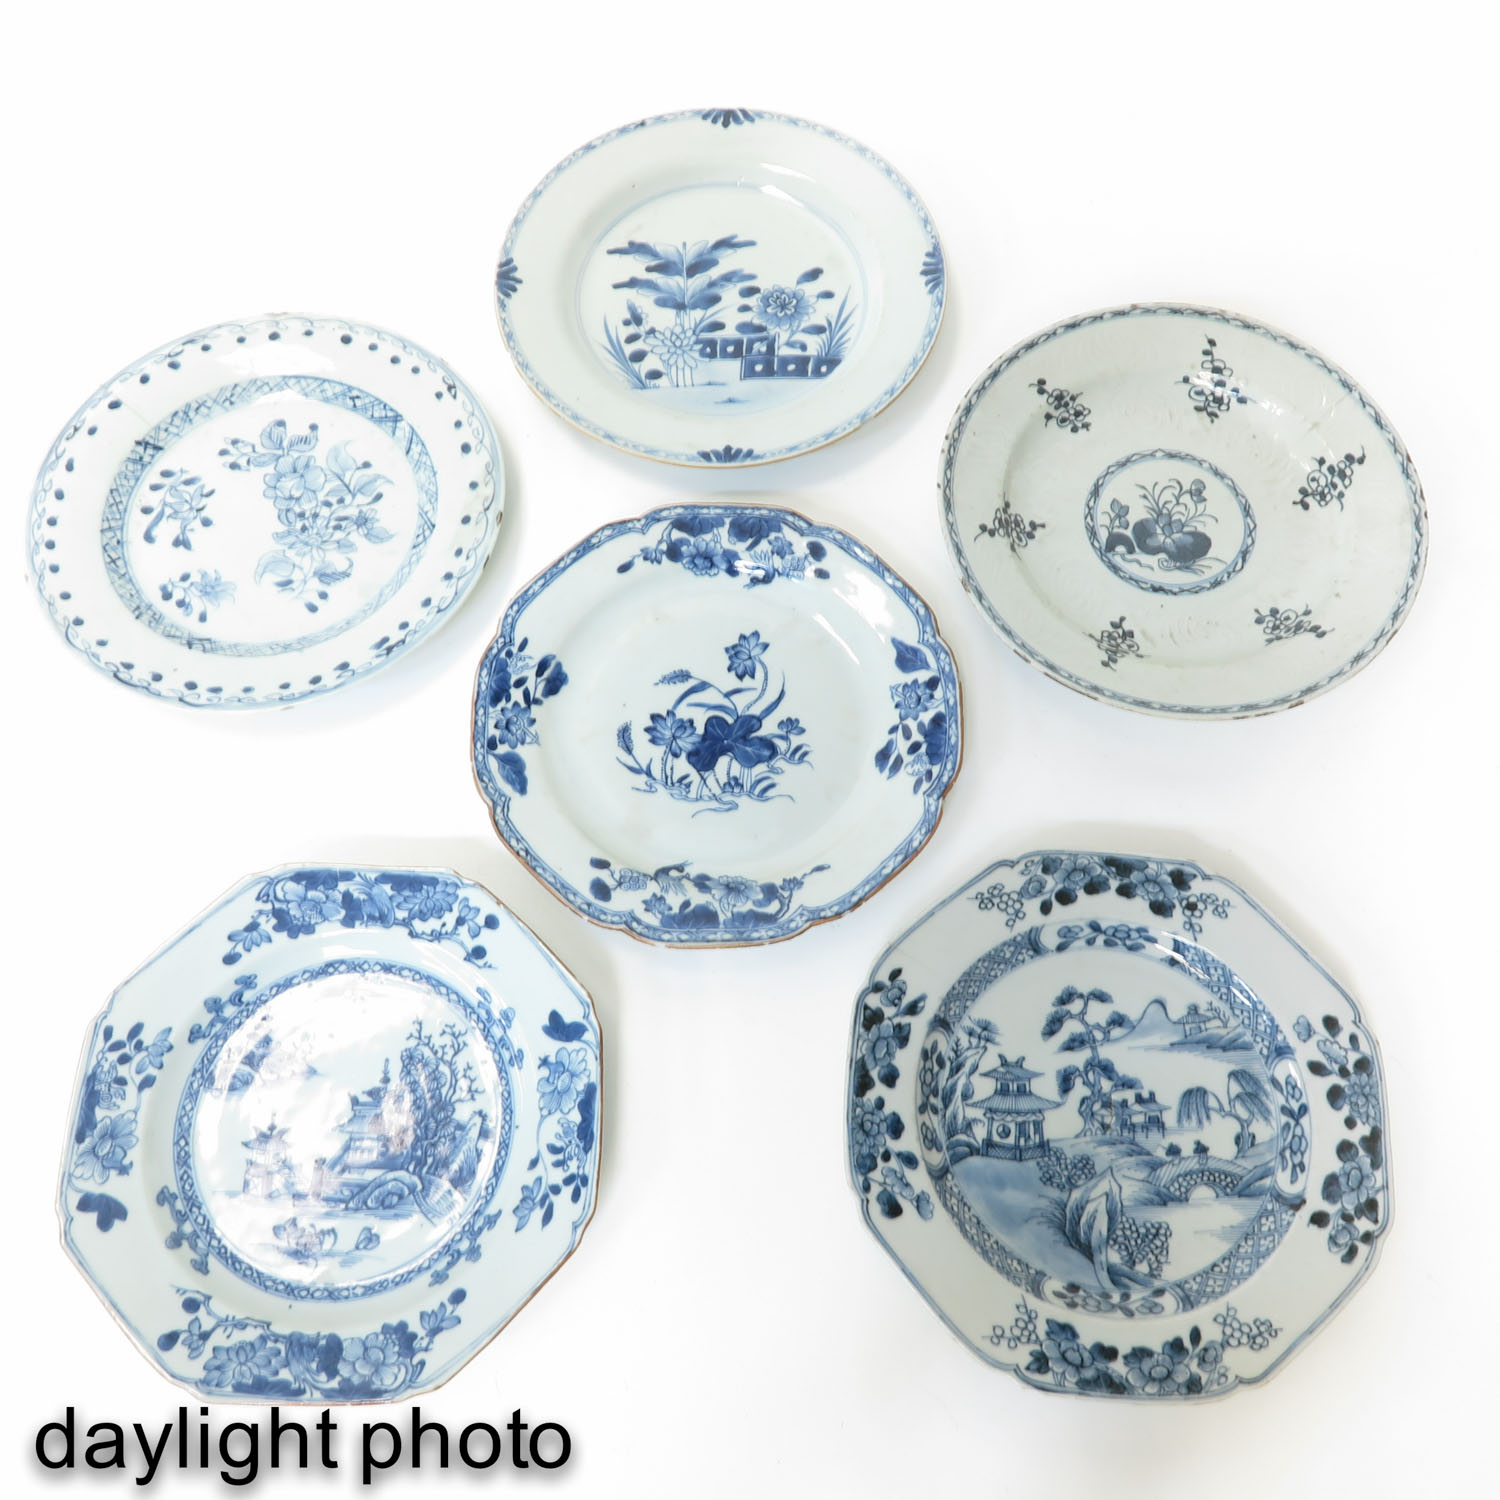 A Collection of 6 Plates - Image 9 of 10